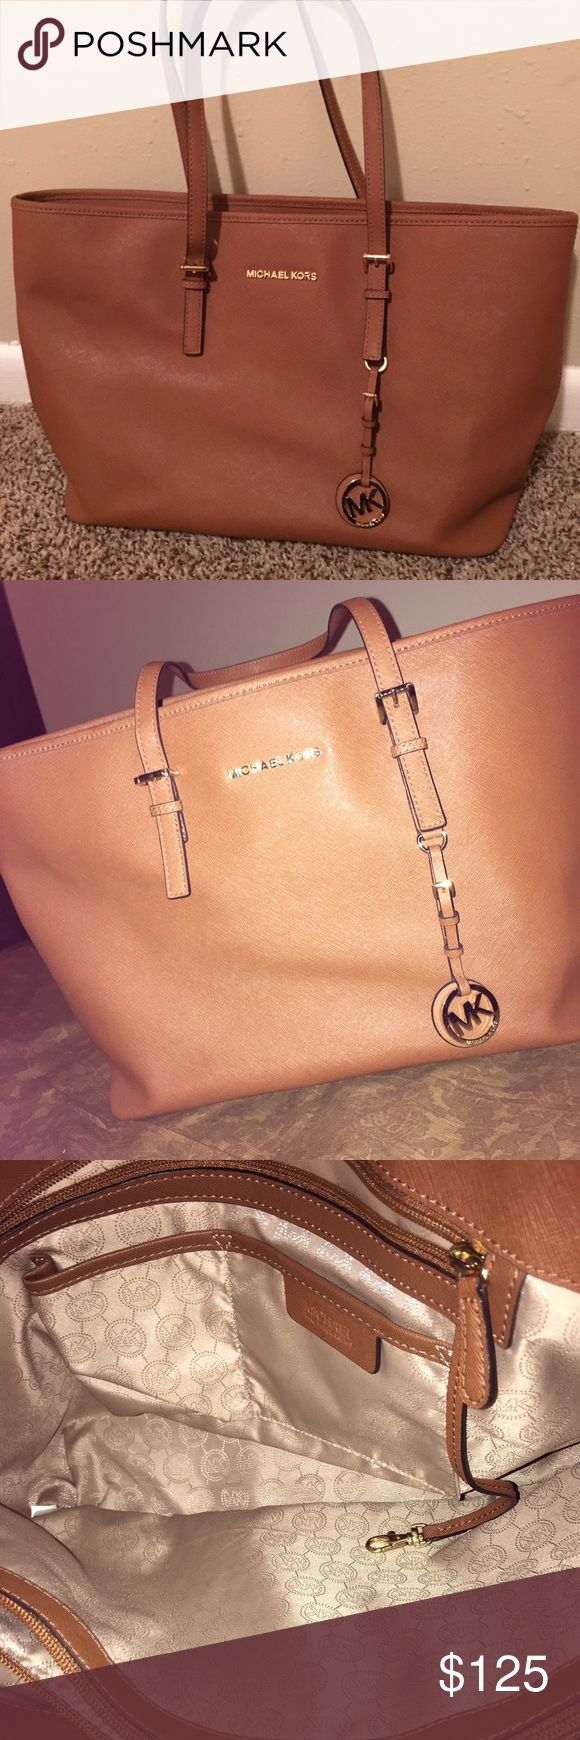 Authentic Michael Kors Jetset tote I'm selling a Michael Kors Jetset tote in like new condition. Sz Medium Michael Kors Bags Totes